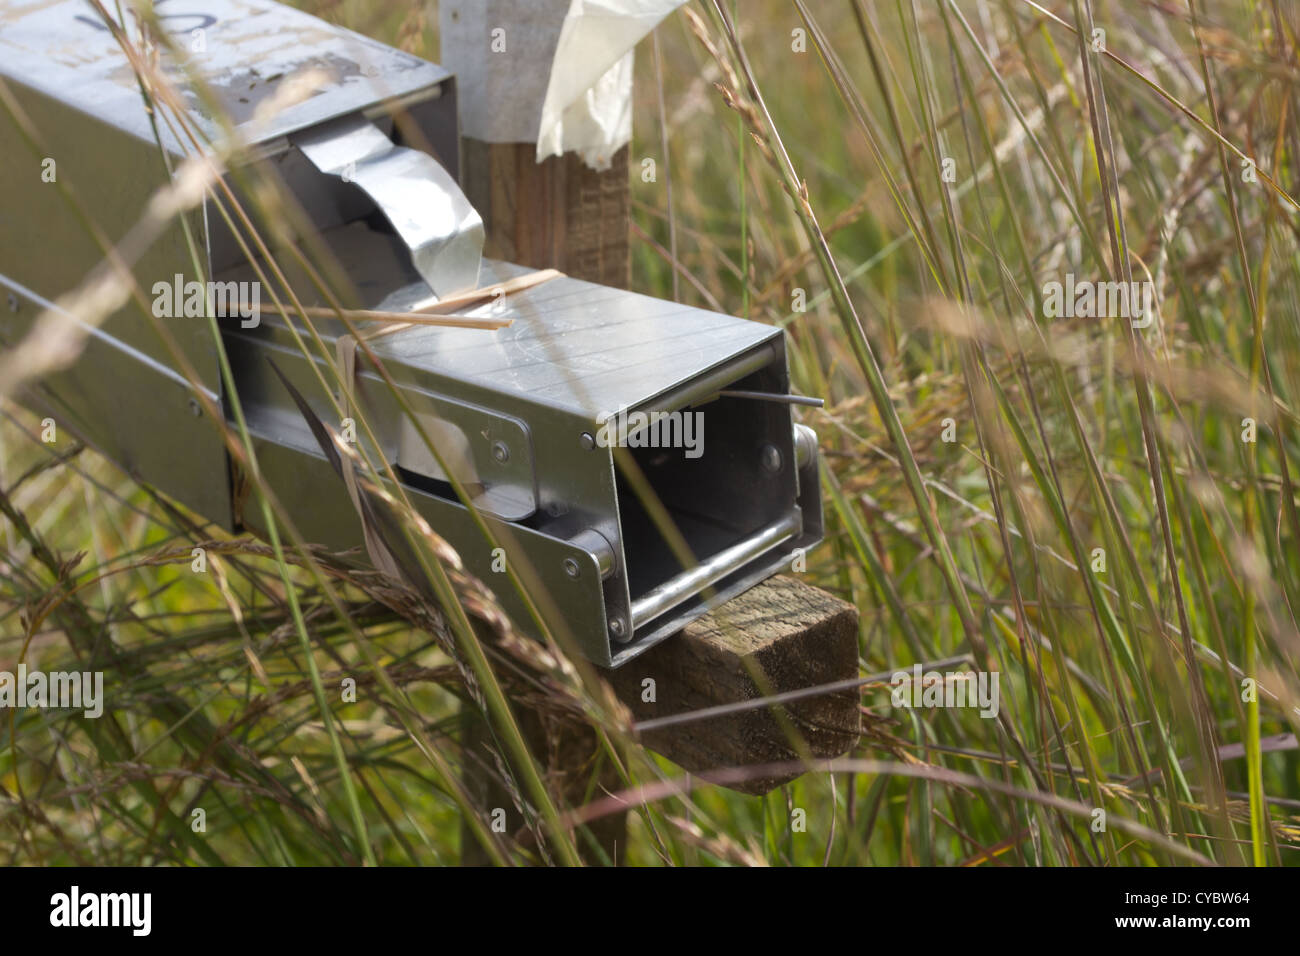 Rodent survey trap in grassland. Surrey, UK. - Stock Image